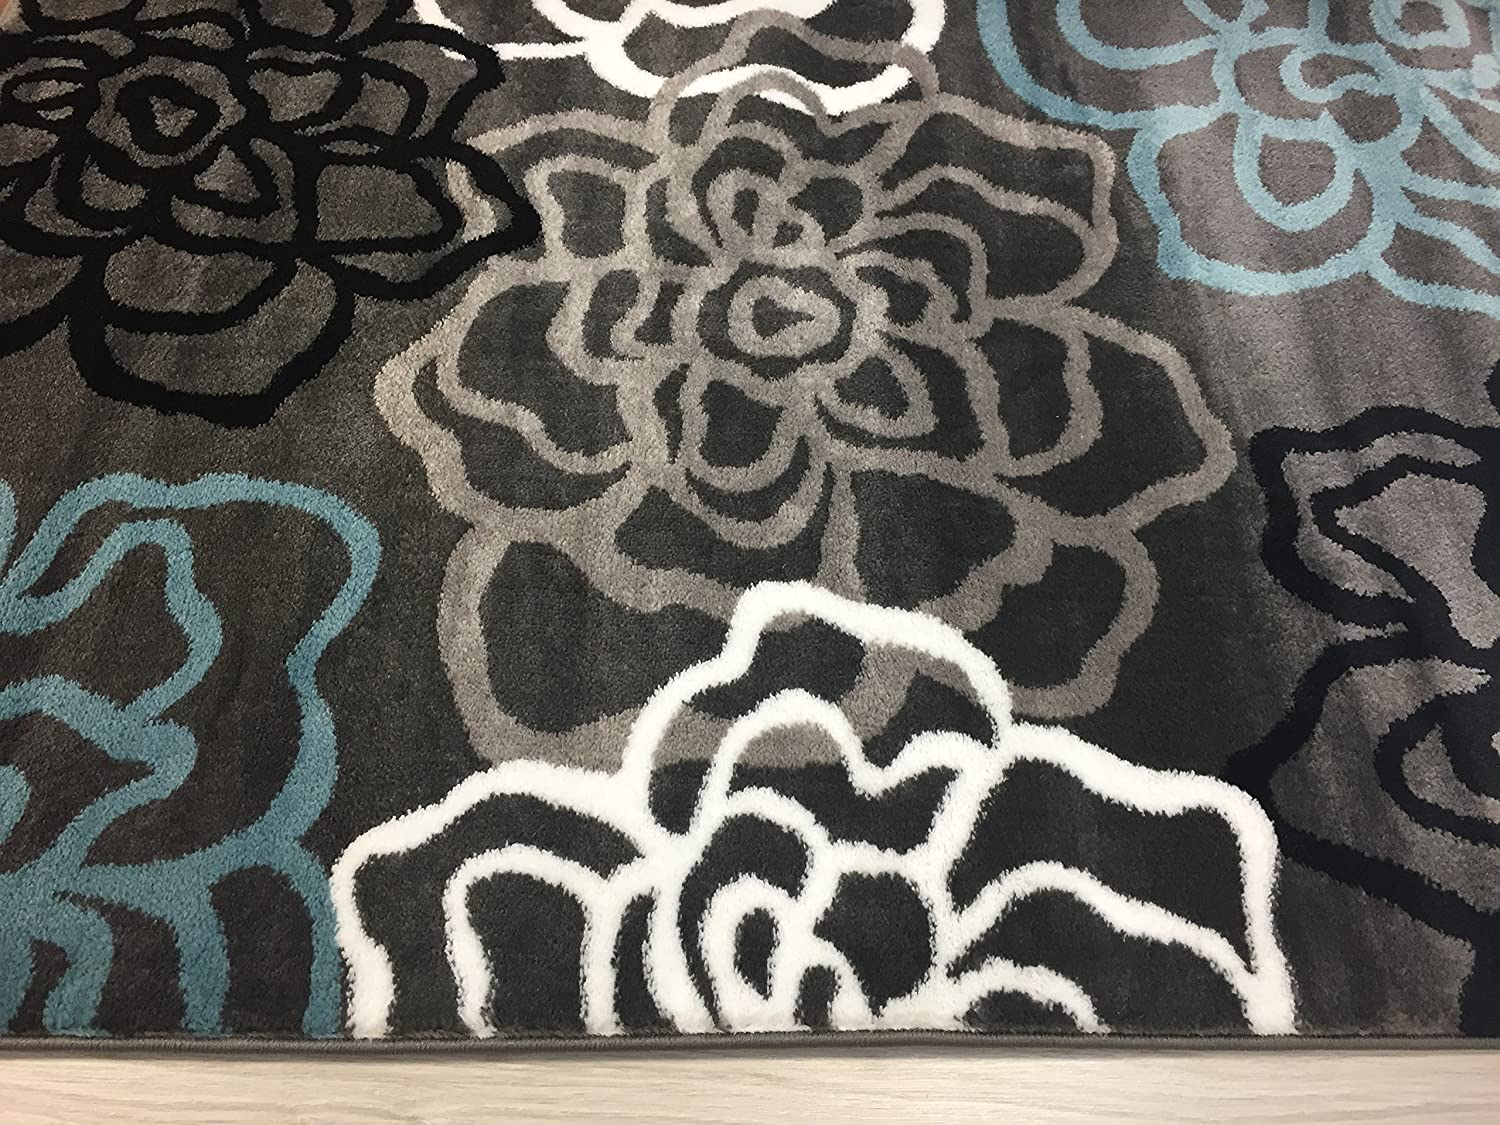 amazoncom rugshop contemporary modern floral flowers area rug   - amazoncom rugshop contemporary modern floral flowers area rug '  x'  gray kitchen  dining